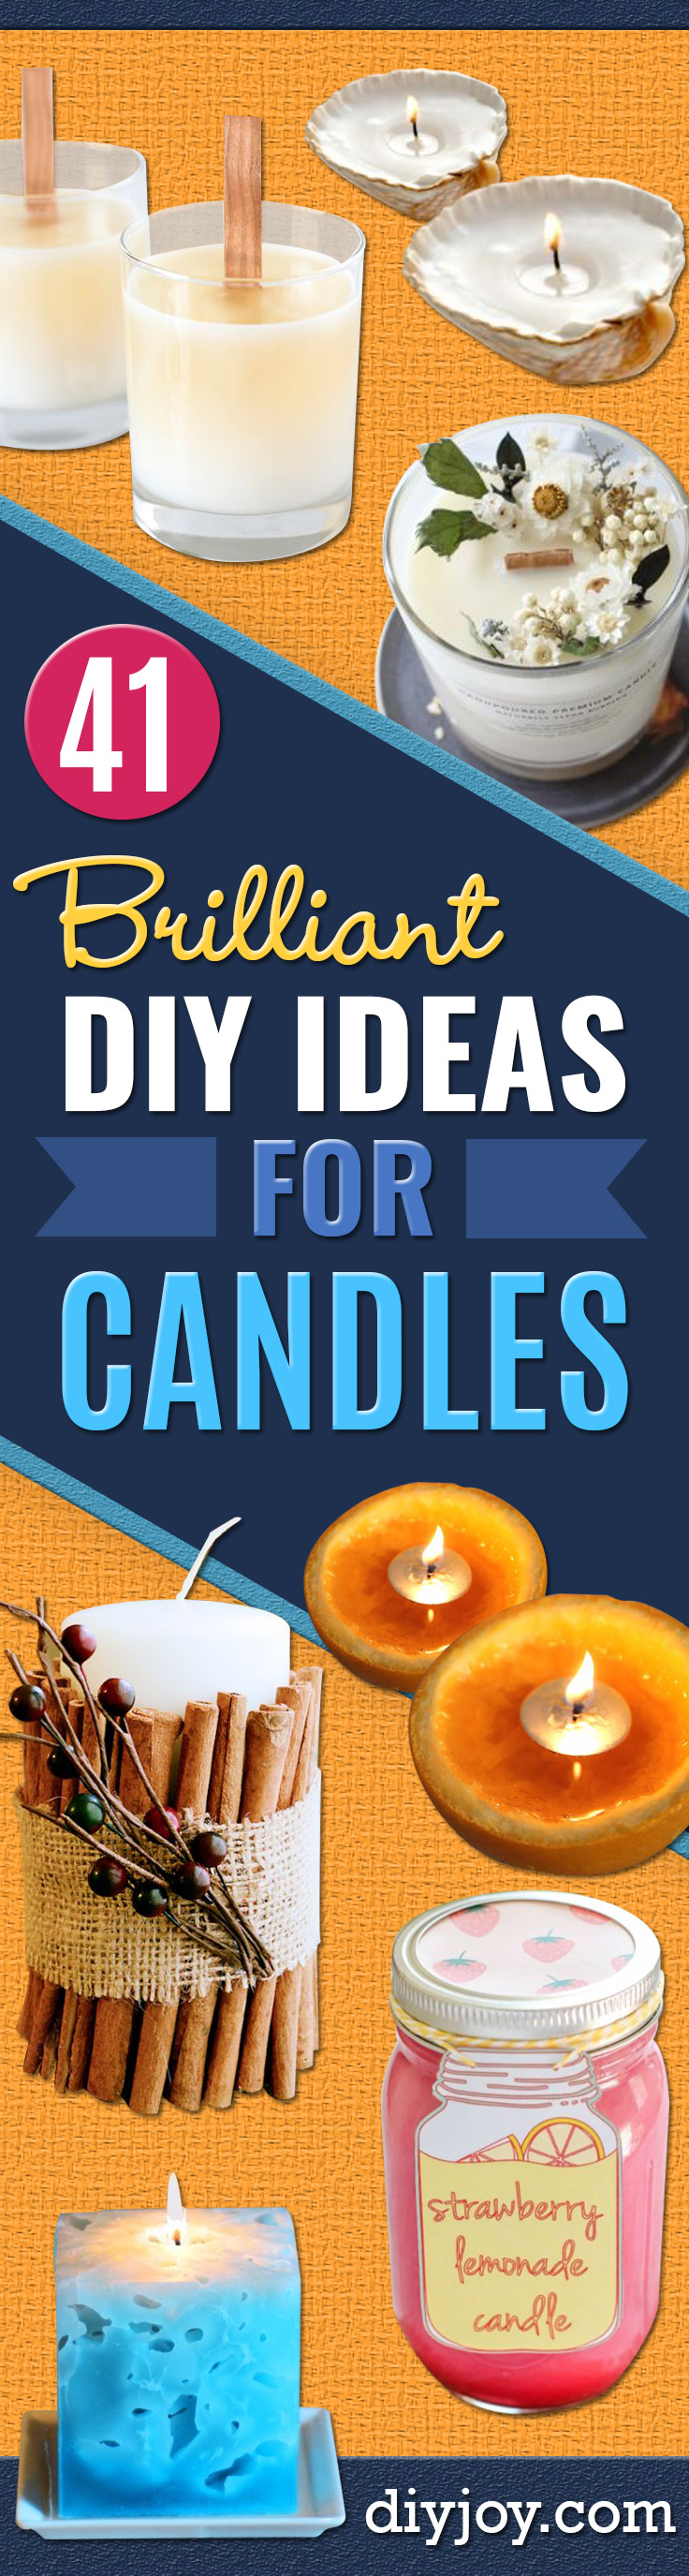 41 brilliant diy ideas for candles diy ideas for candles cute cheap and creative ways to decorate with candles solutioingenieria Choice Image